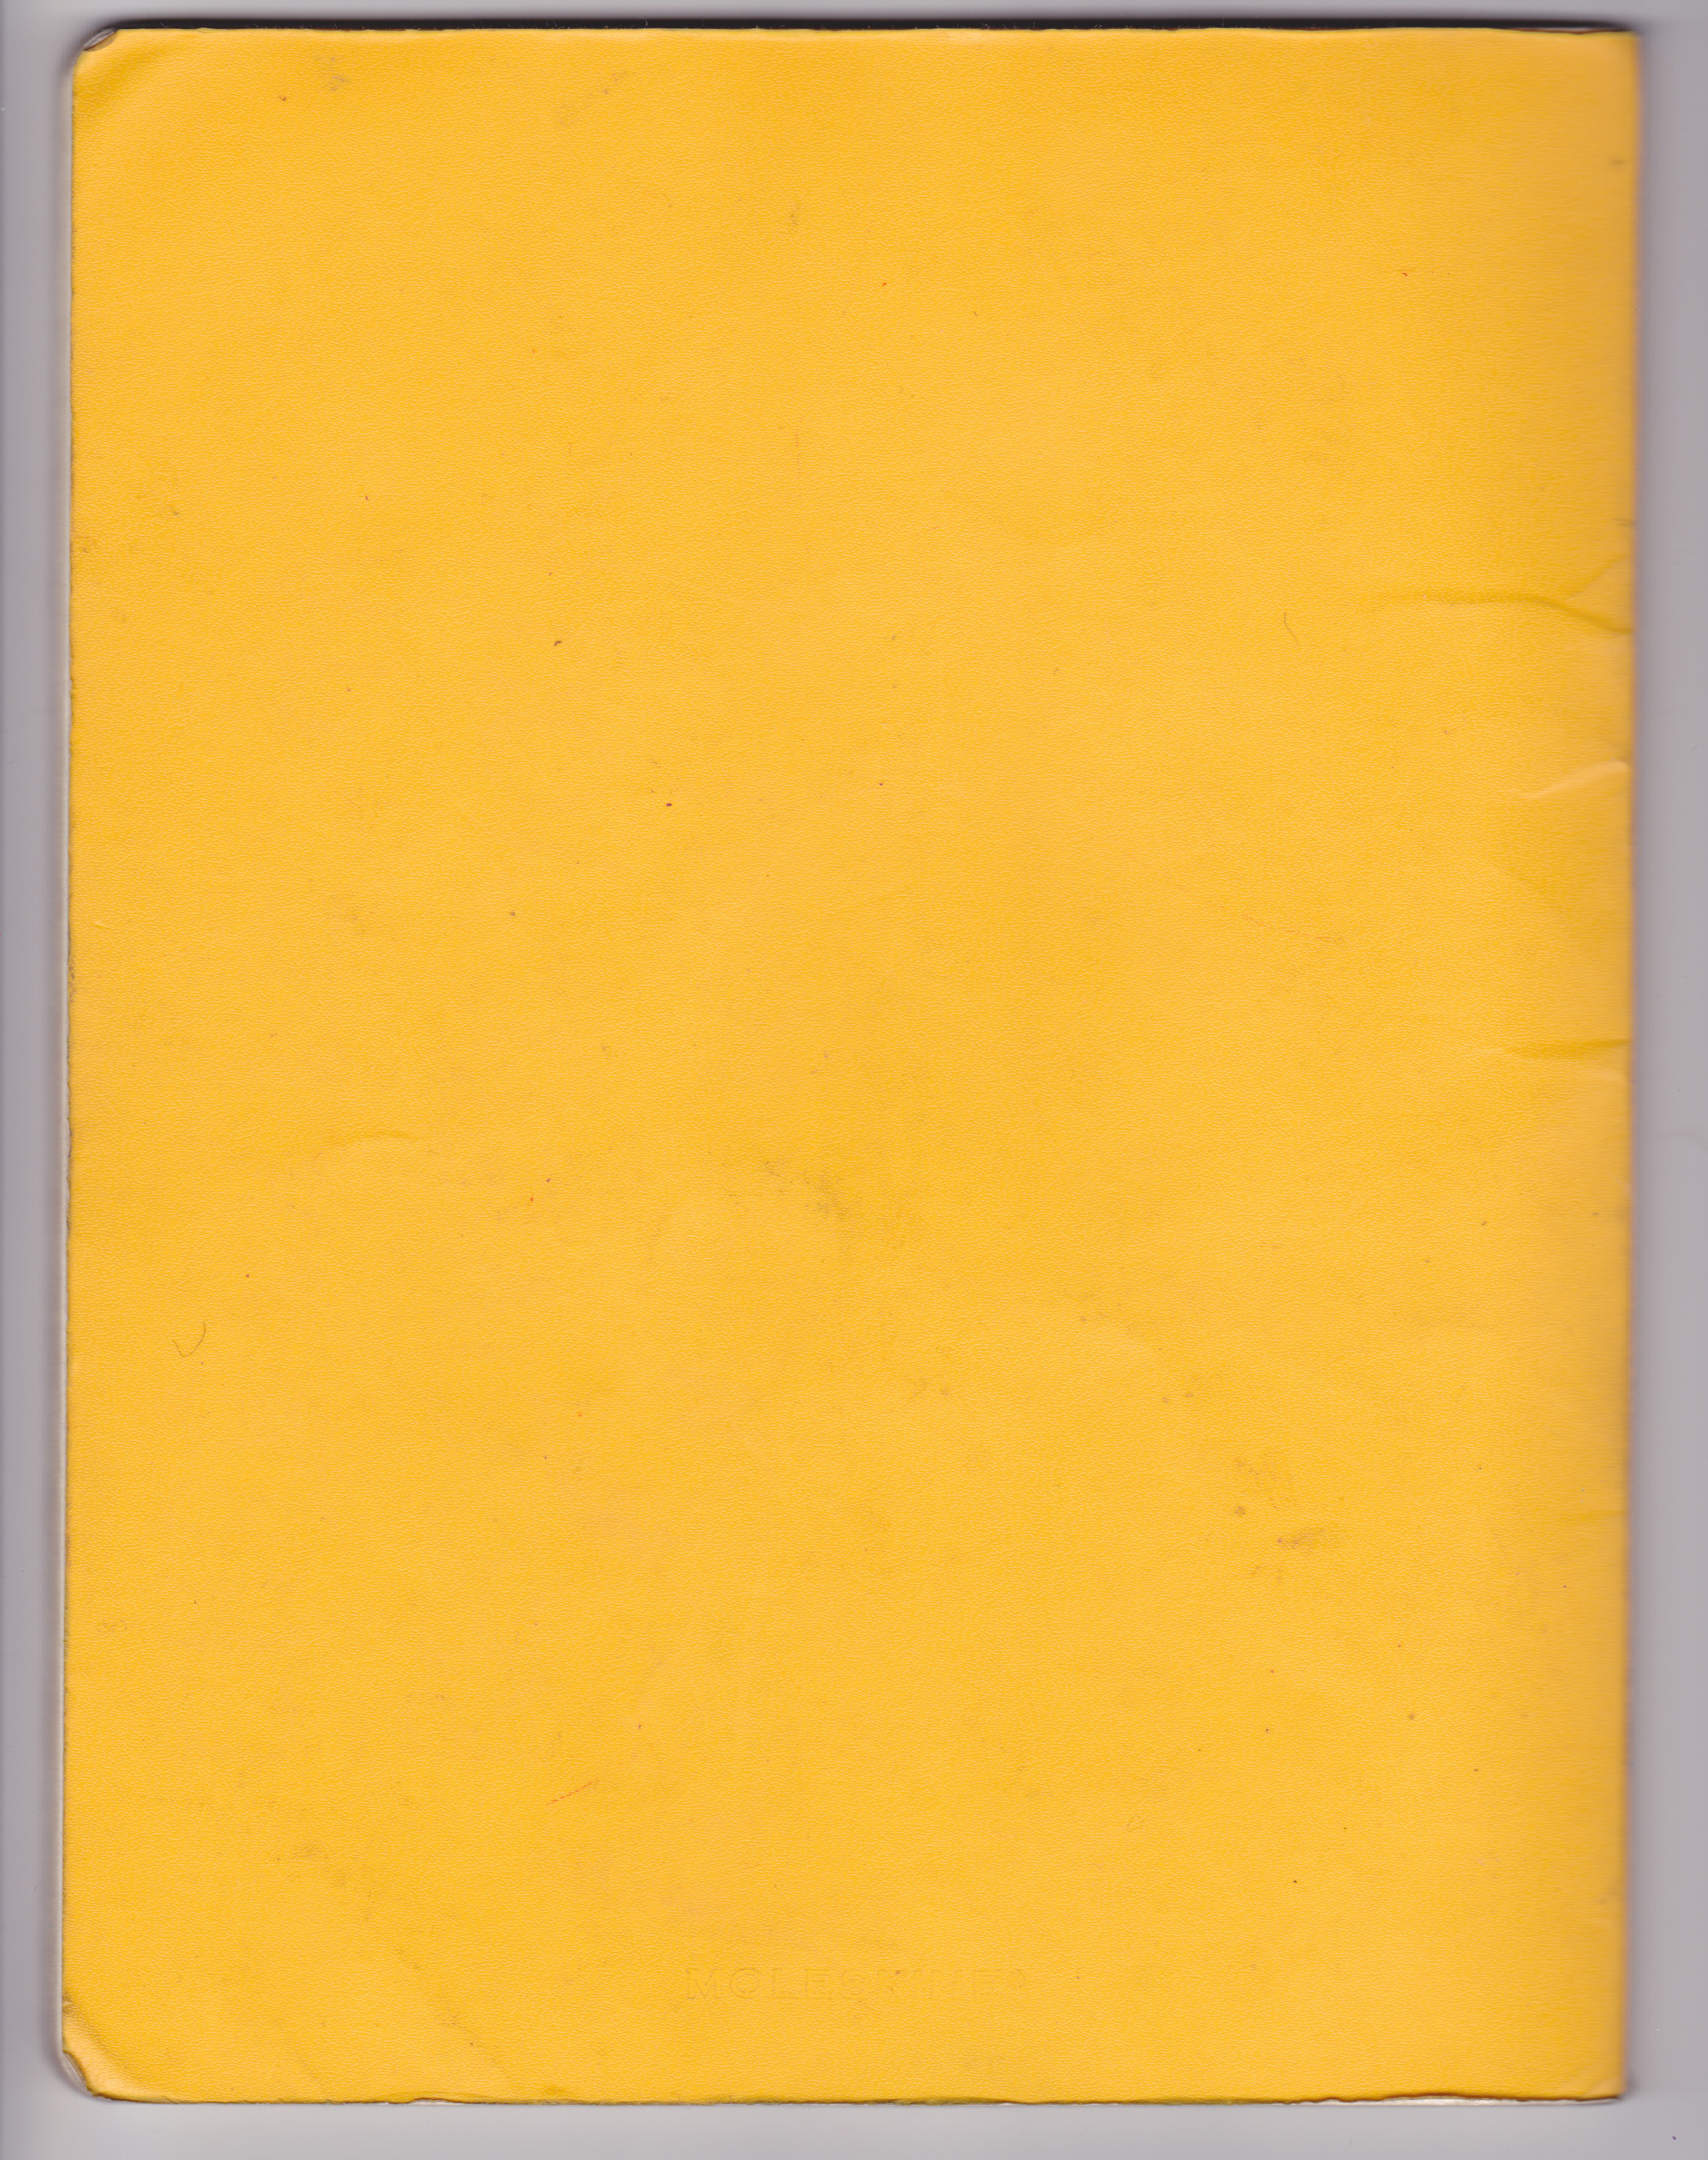 Yellow Back Cover.jpeg